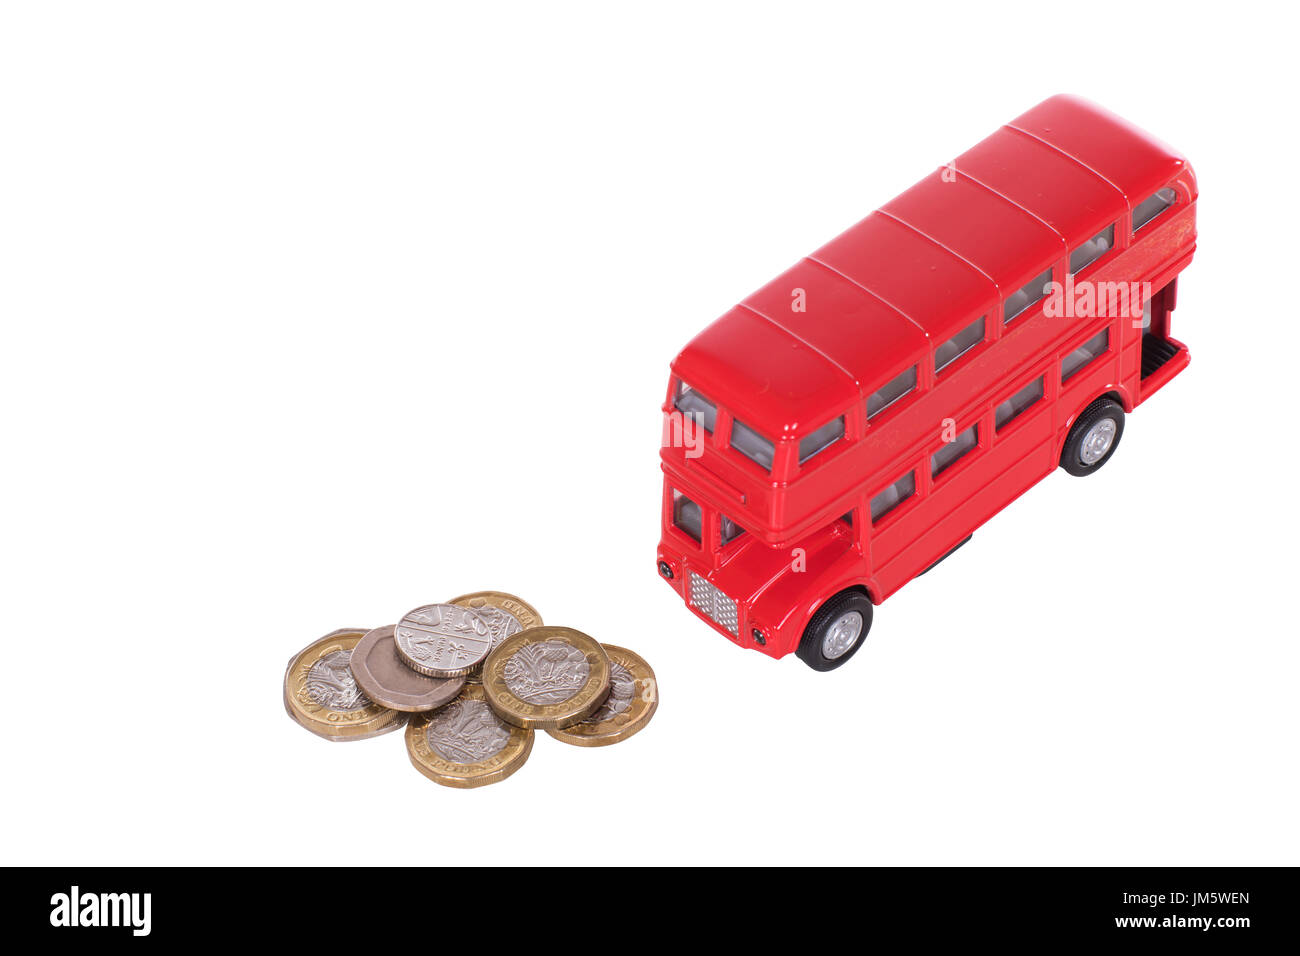 Red double-decker bus with a pile of loose sterling change in a concept of the costs of public transport in Britain isolated on white - Stock Image